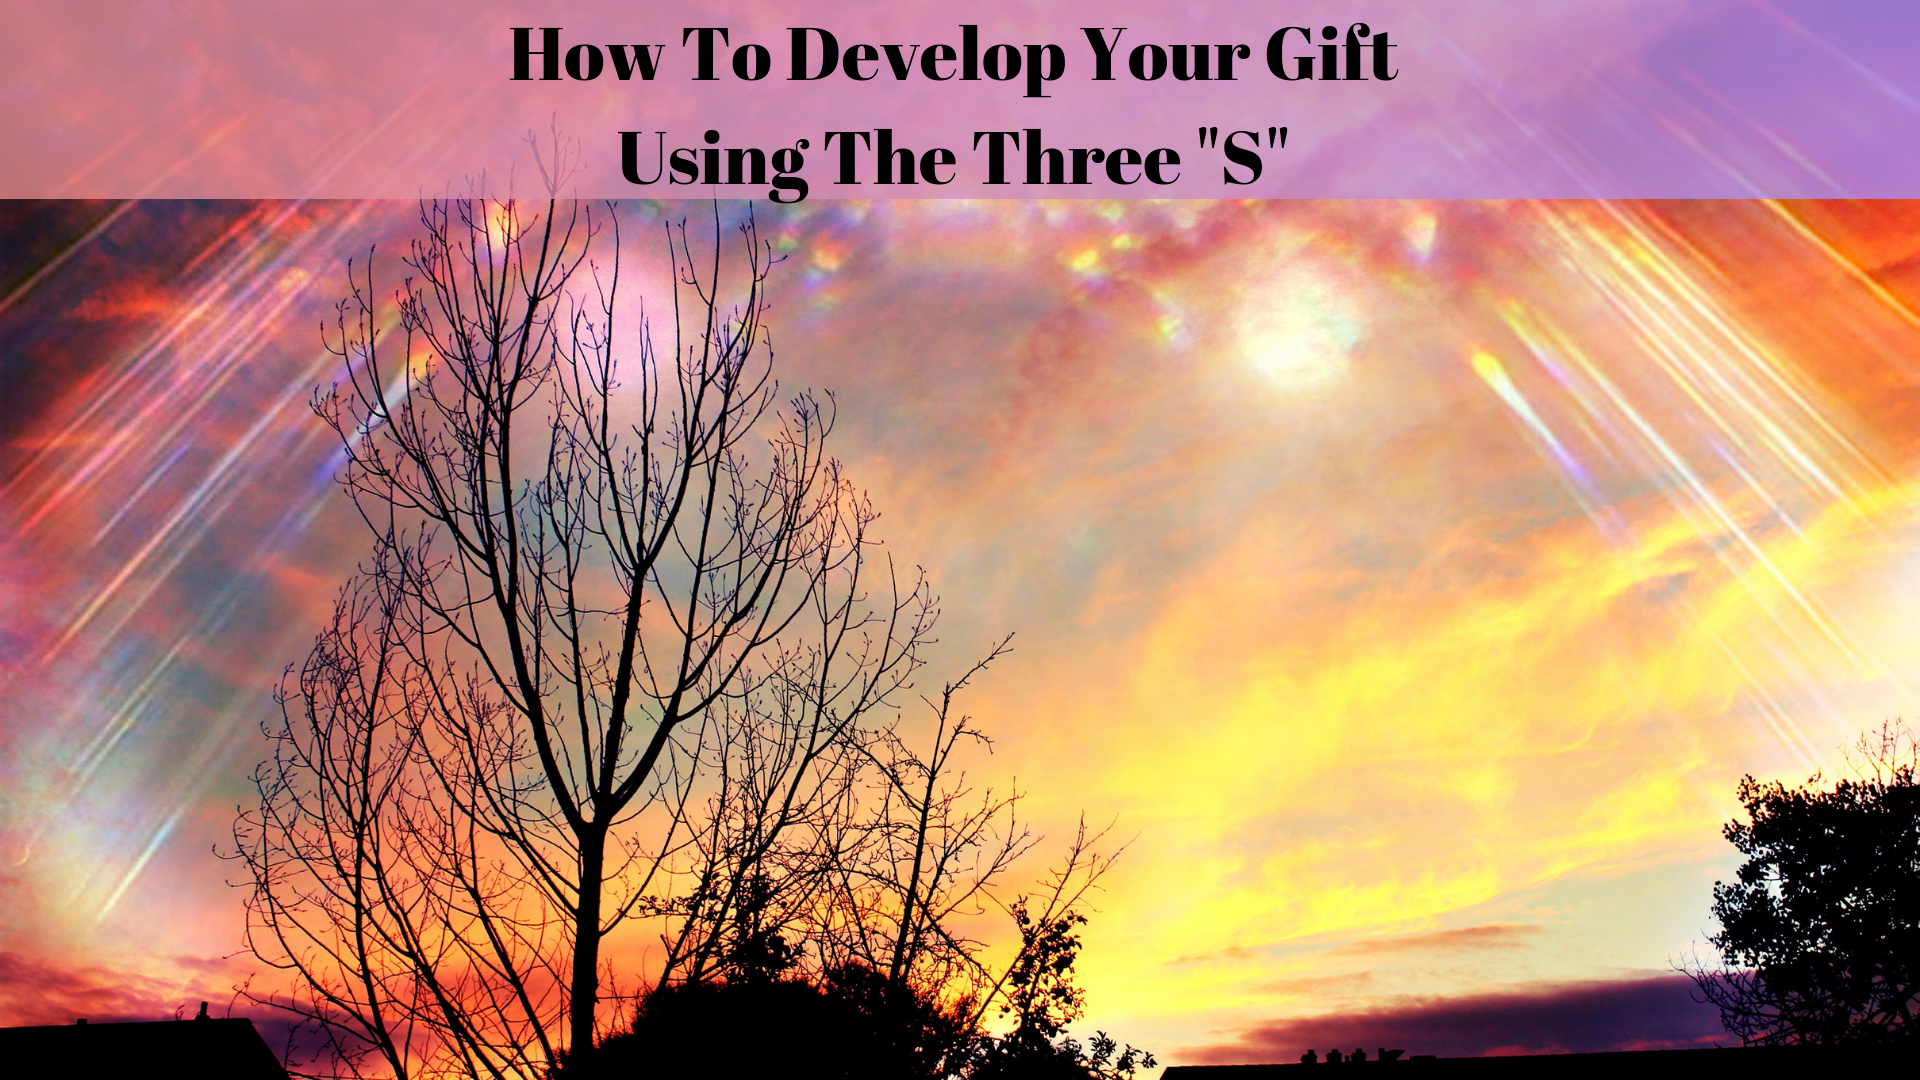 How To Develop Your Psychic Abilities with the Three